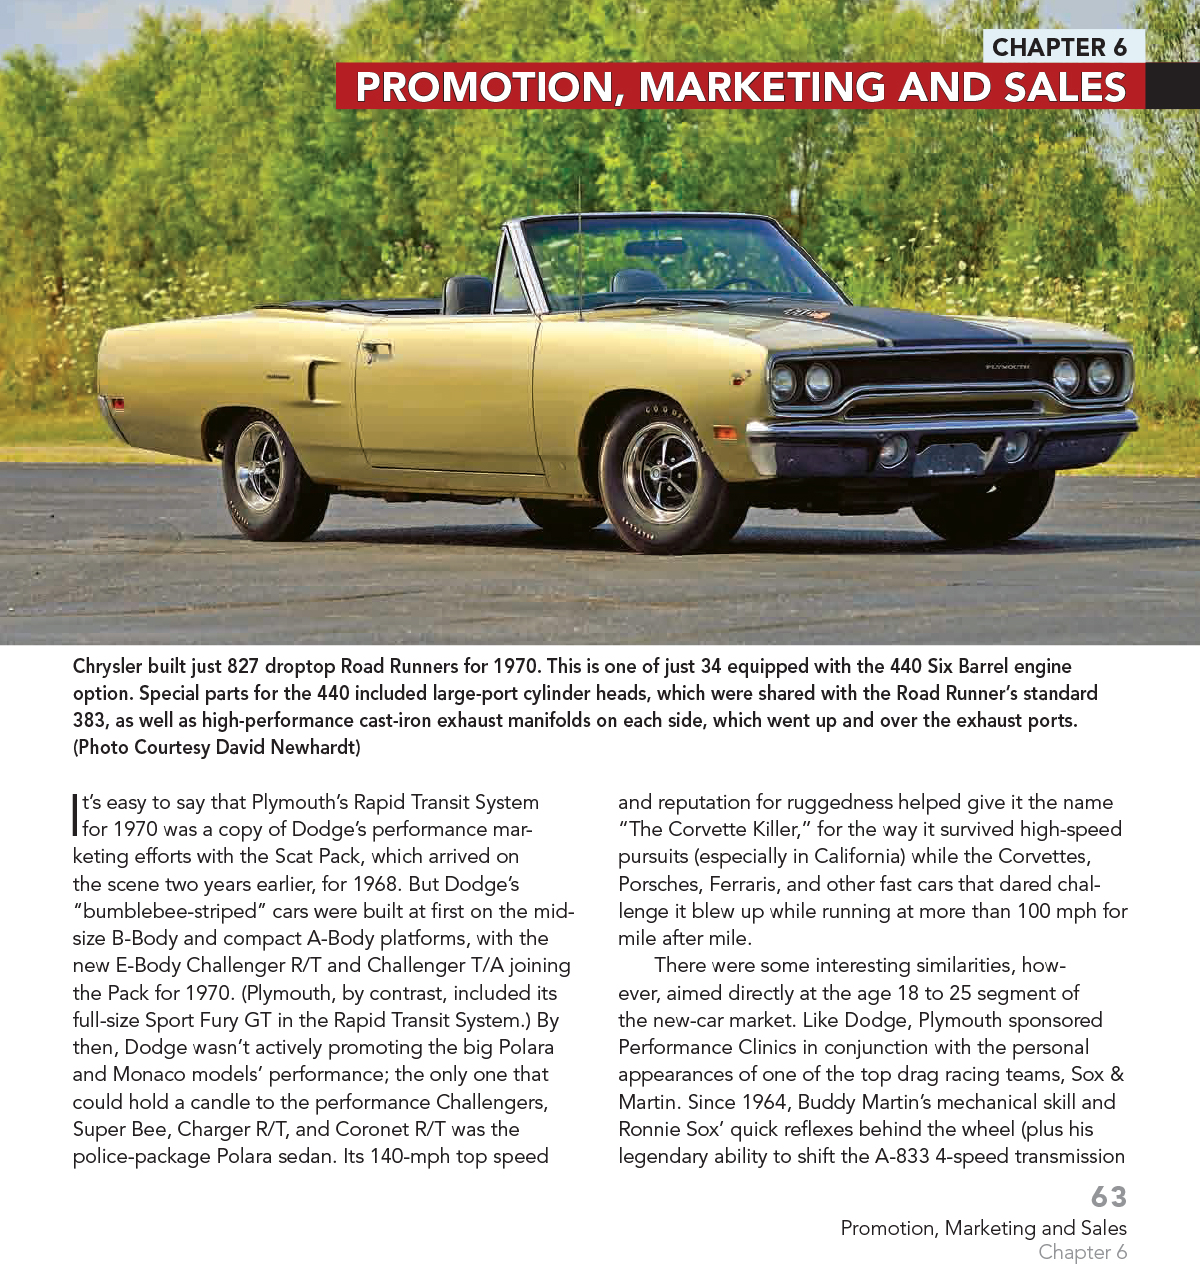 1970 Road Runner Wiring Diagram Detailed Schematic Diagrams 72 Plymouth Color Electrical Dart